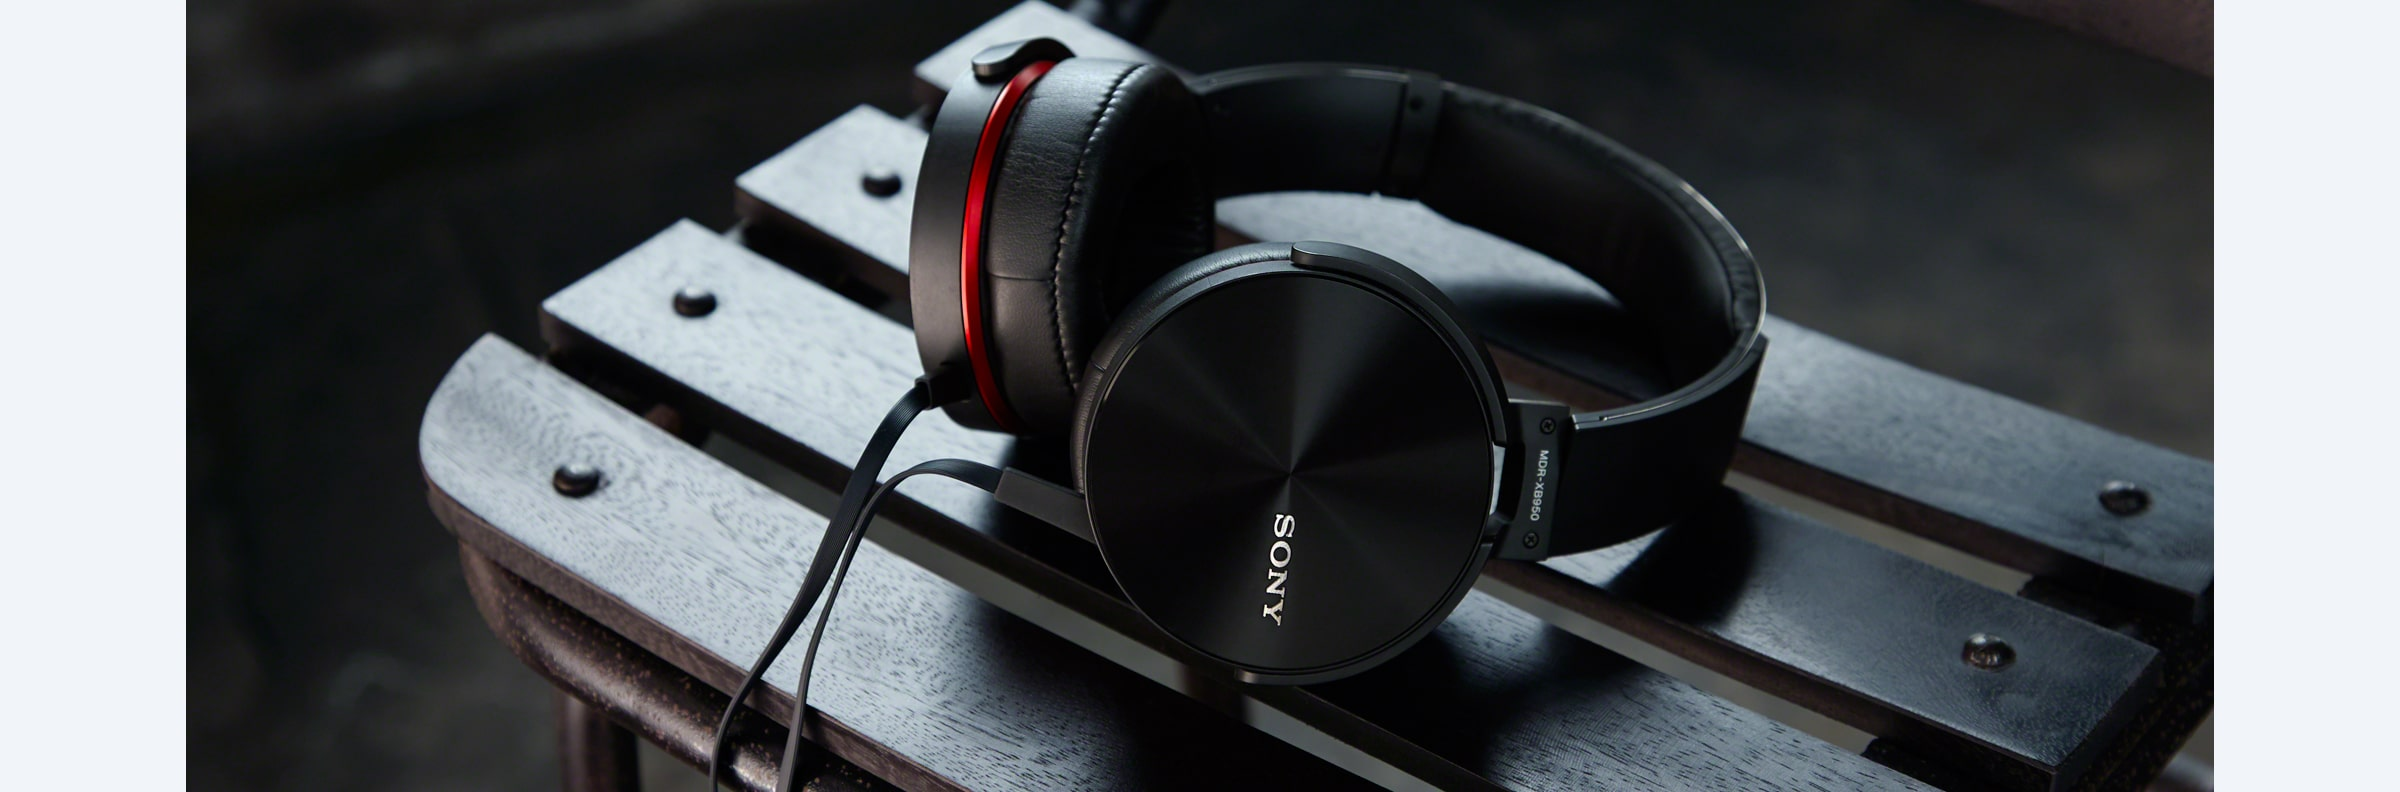 MDR-XB950AP EXTRA BASS™ Headphones in action